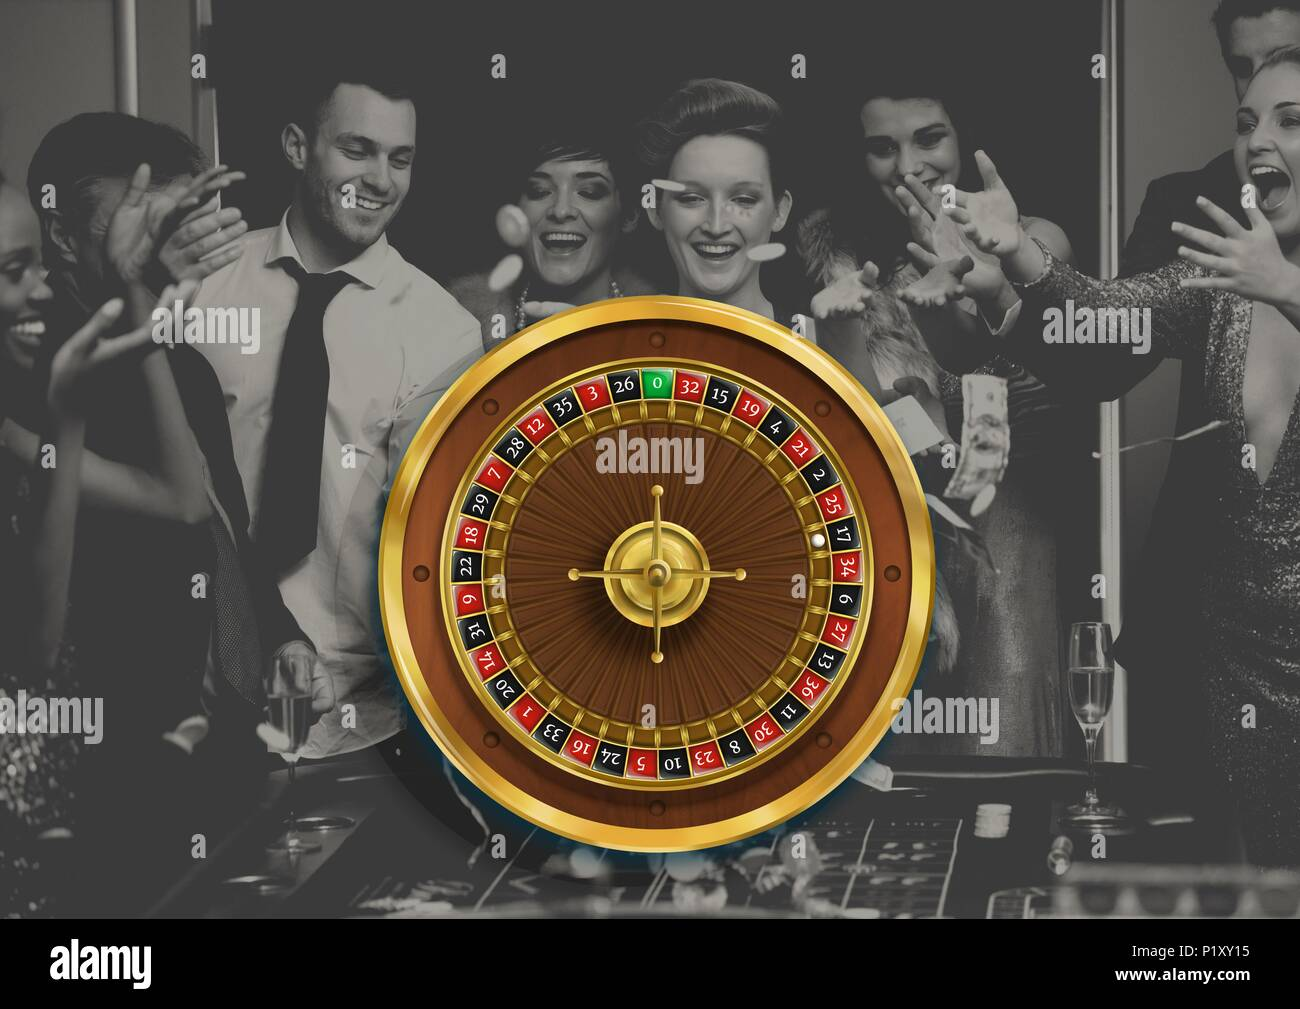 Roulette wheel and people playing in casino - Stock Image